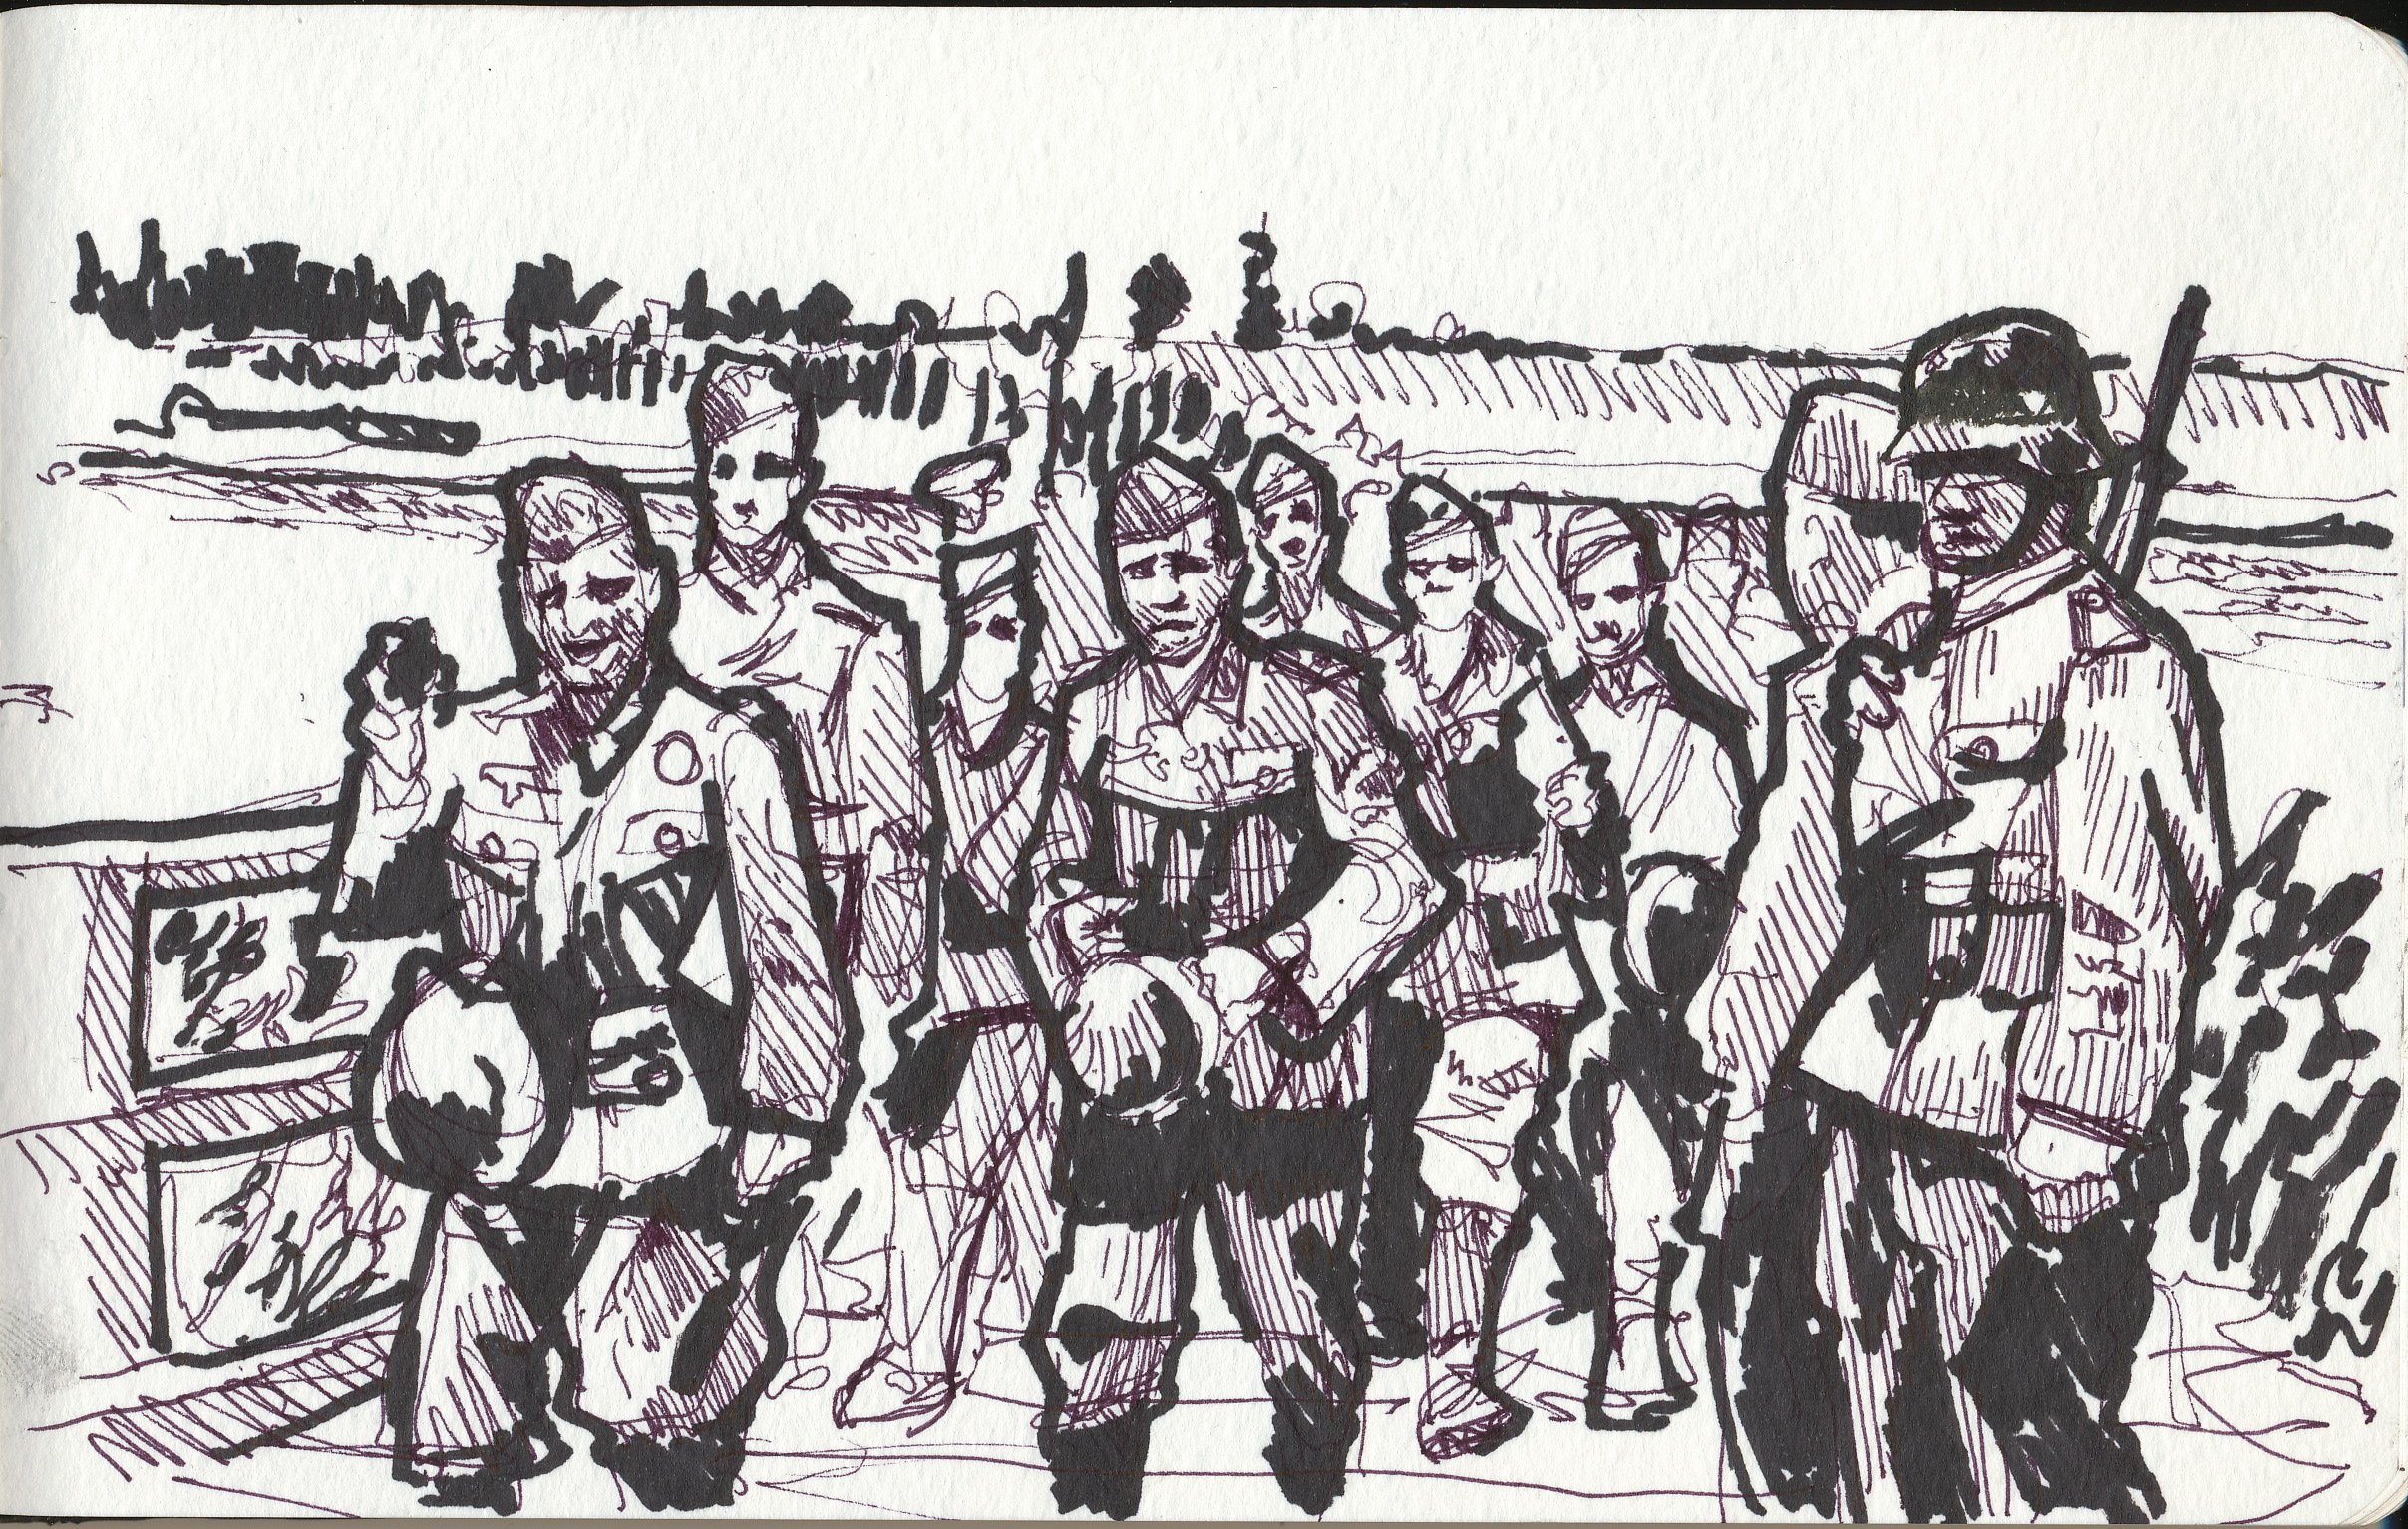 German troops on the march in World War 2